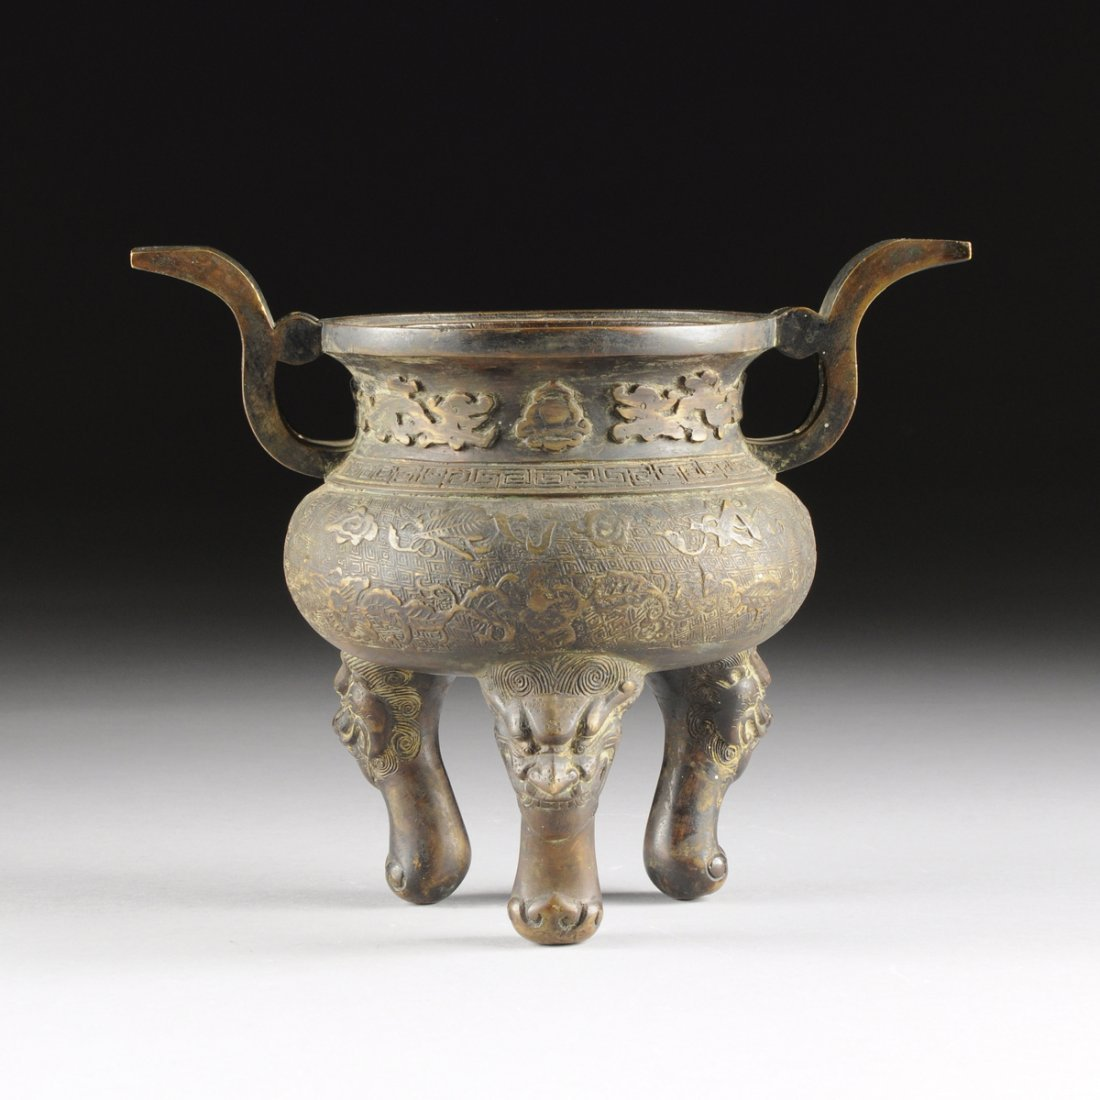 A CHINESE ARCHAISTIC STYLE PATINATED BRONZE DING, LATE